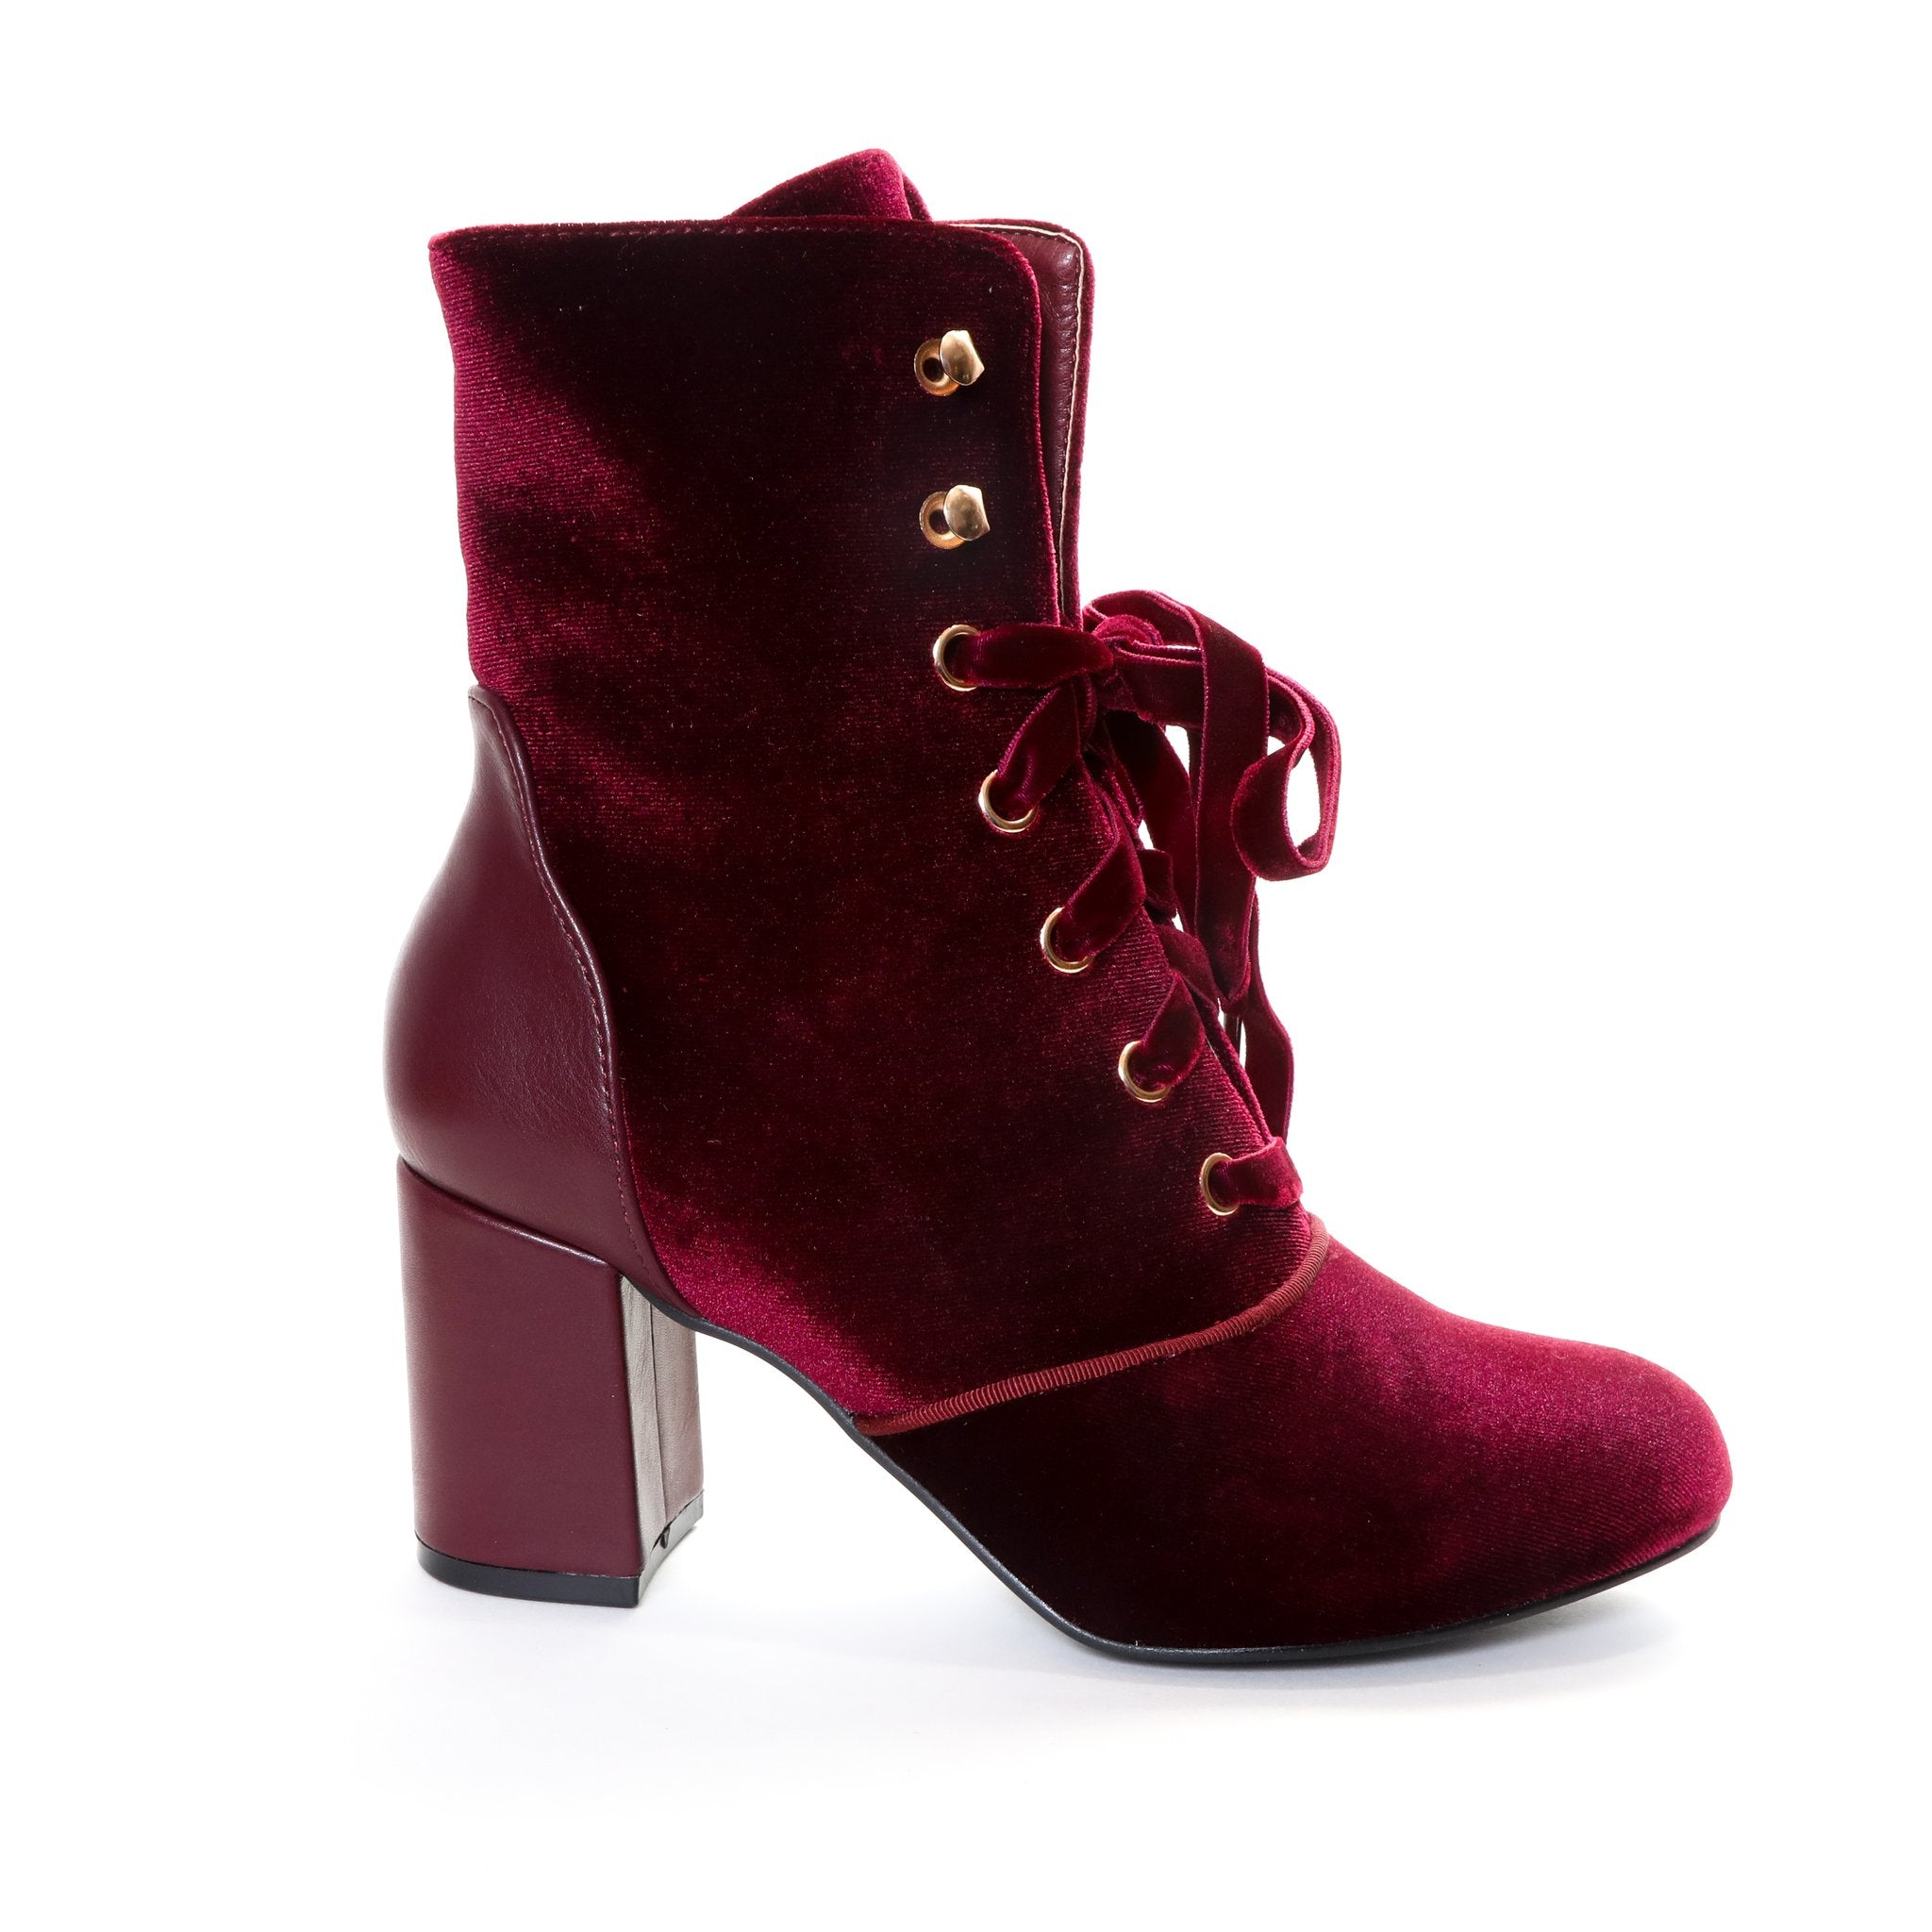 Claudia by Dolce Nome | Lace Up Heel Boots in Wine (side main view)